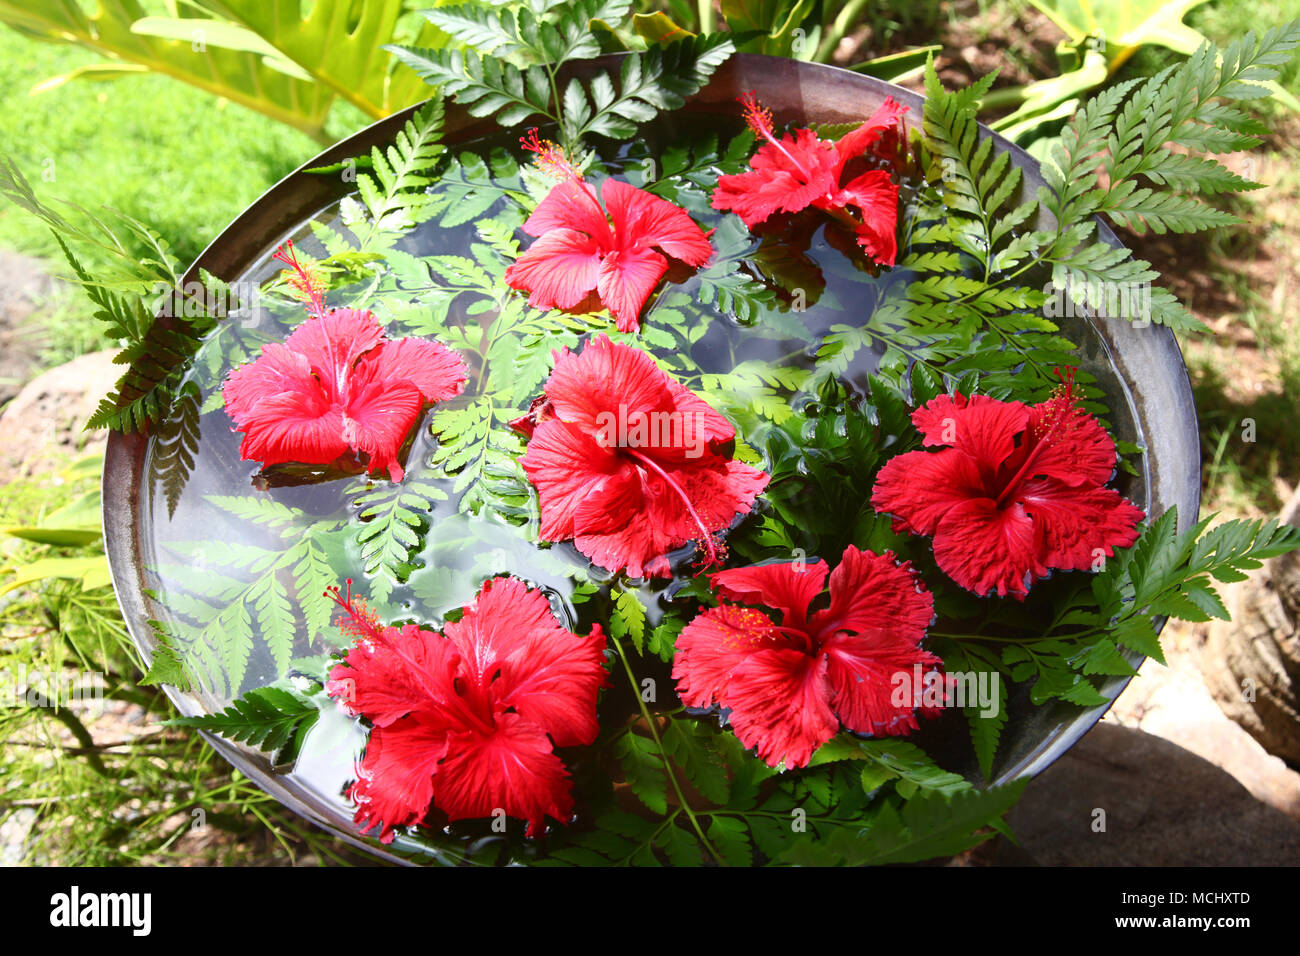 Red Hibiscus Flowers Floating In Water Surrounded By Tropical Green